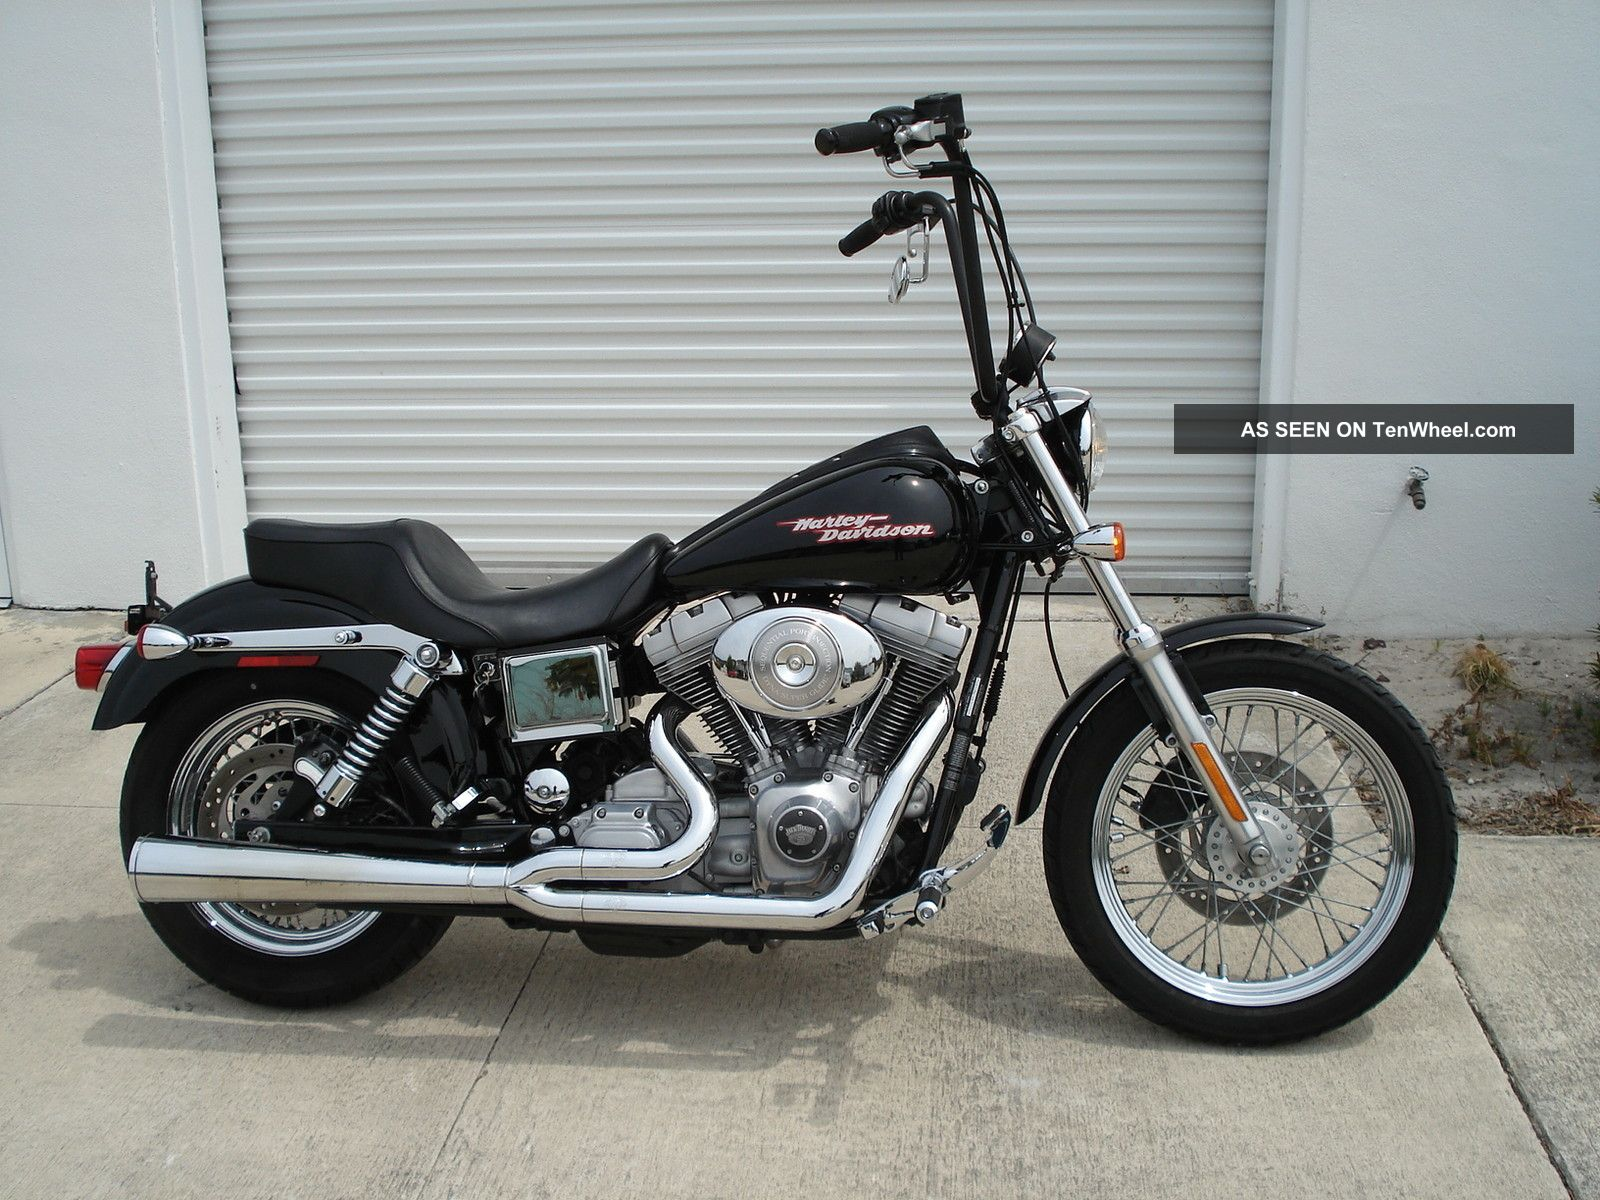 2004 Harley Davidson Dyna Glide Fxd Very Cool Skool Bike Dyna photo